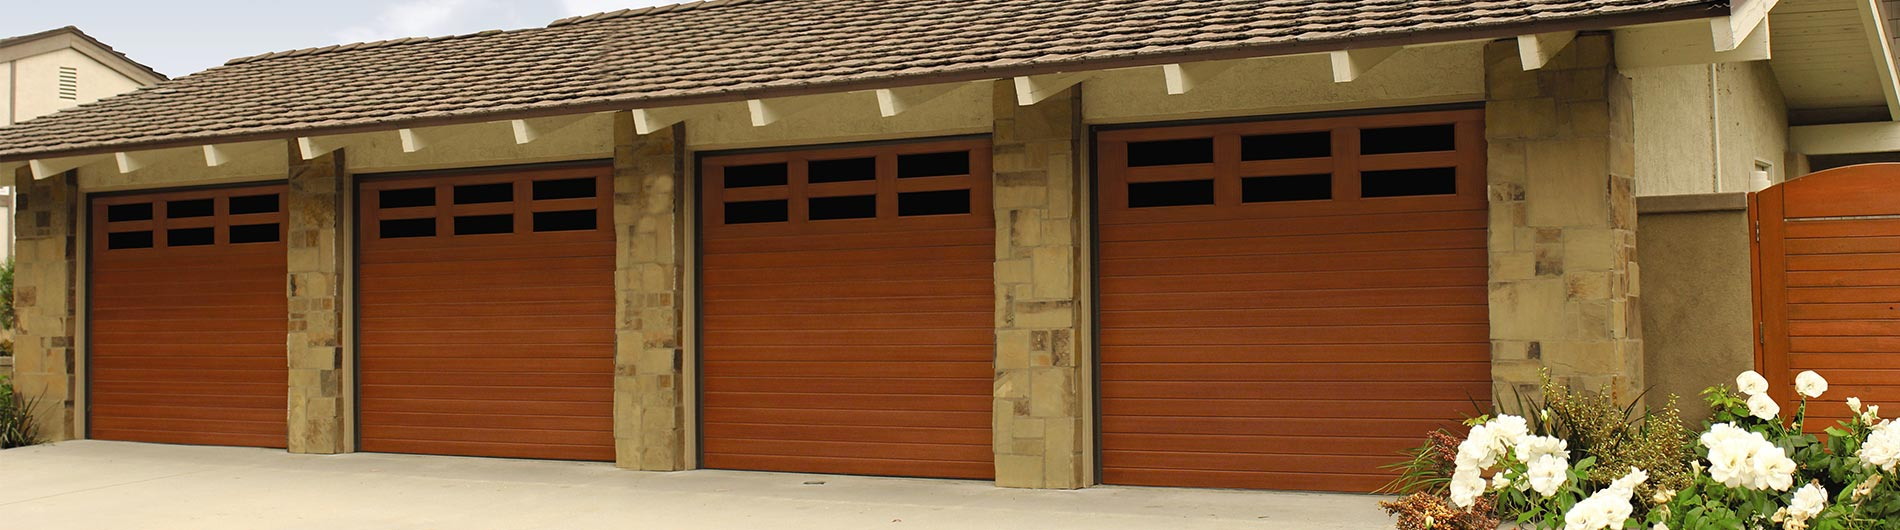 wood garage door builderFiberglass Garage Doors 9800